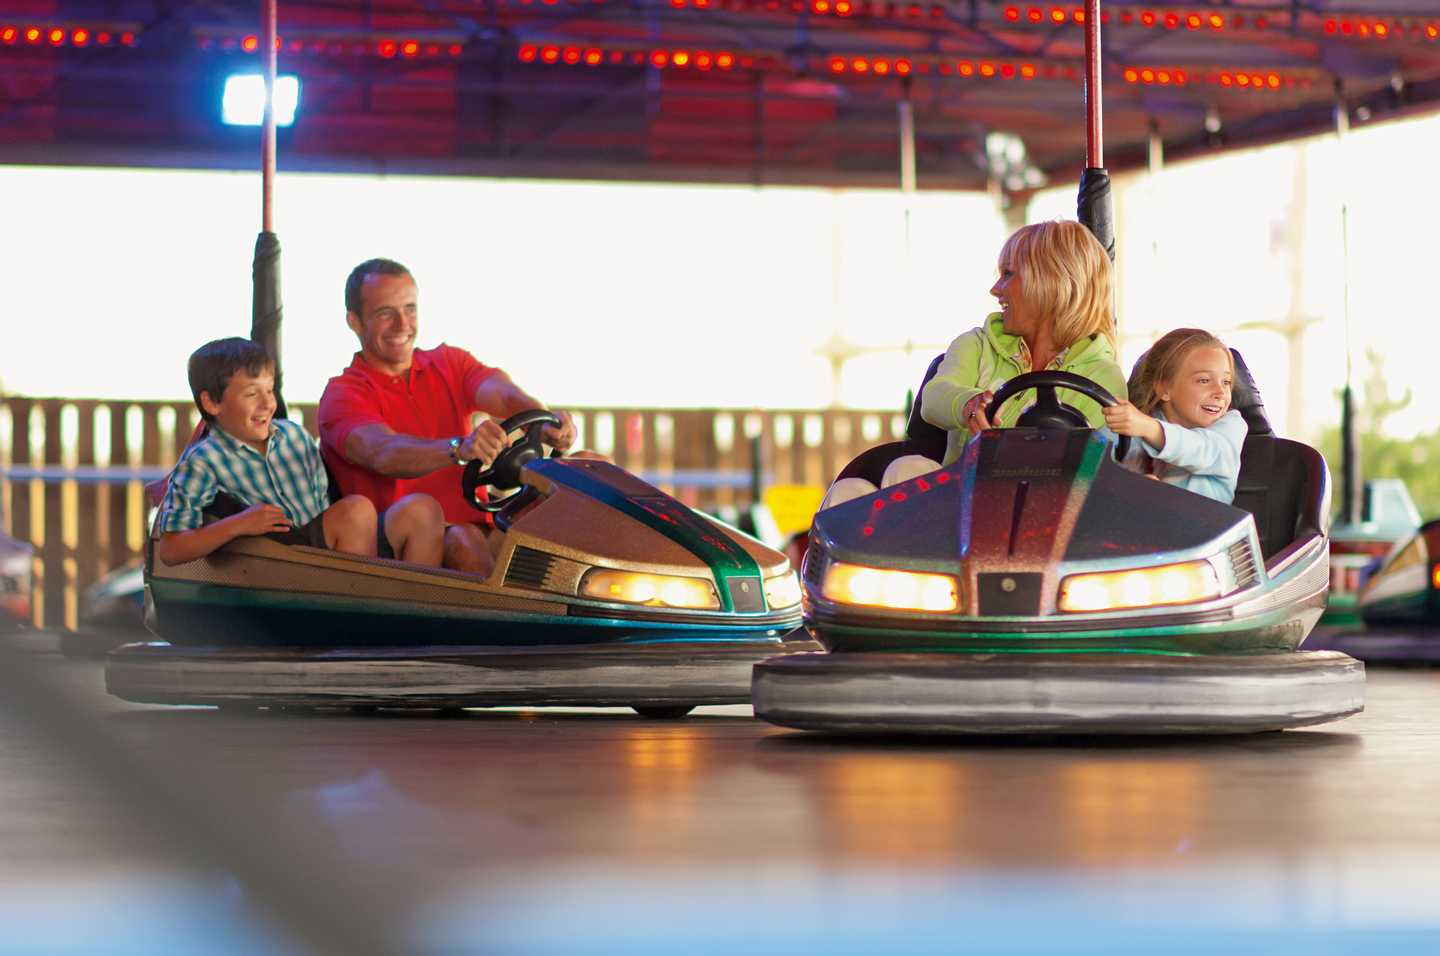 Family bumping into each other on the Dodgems at the funfair